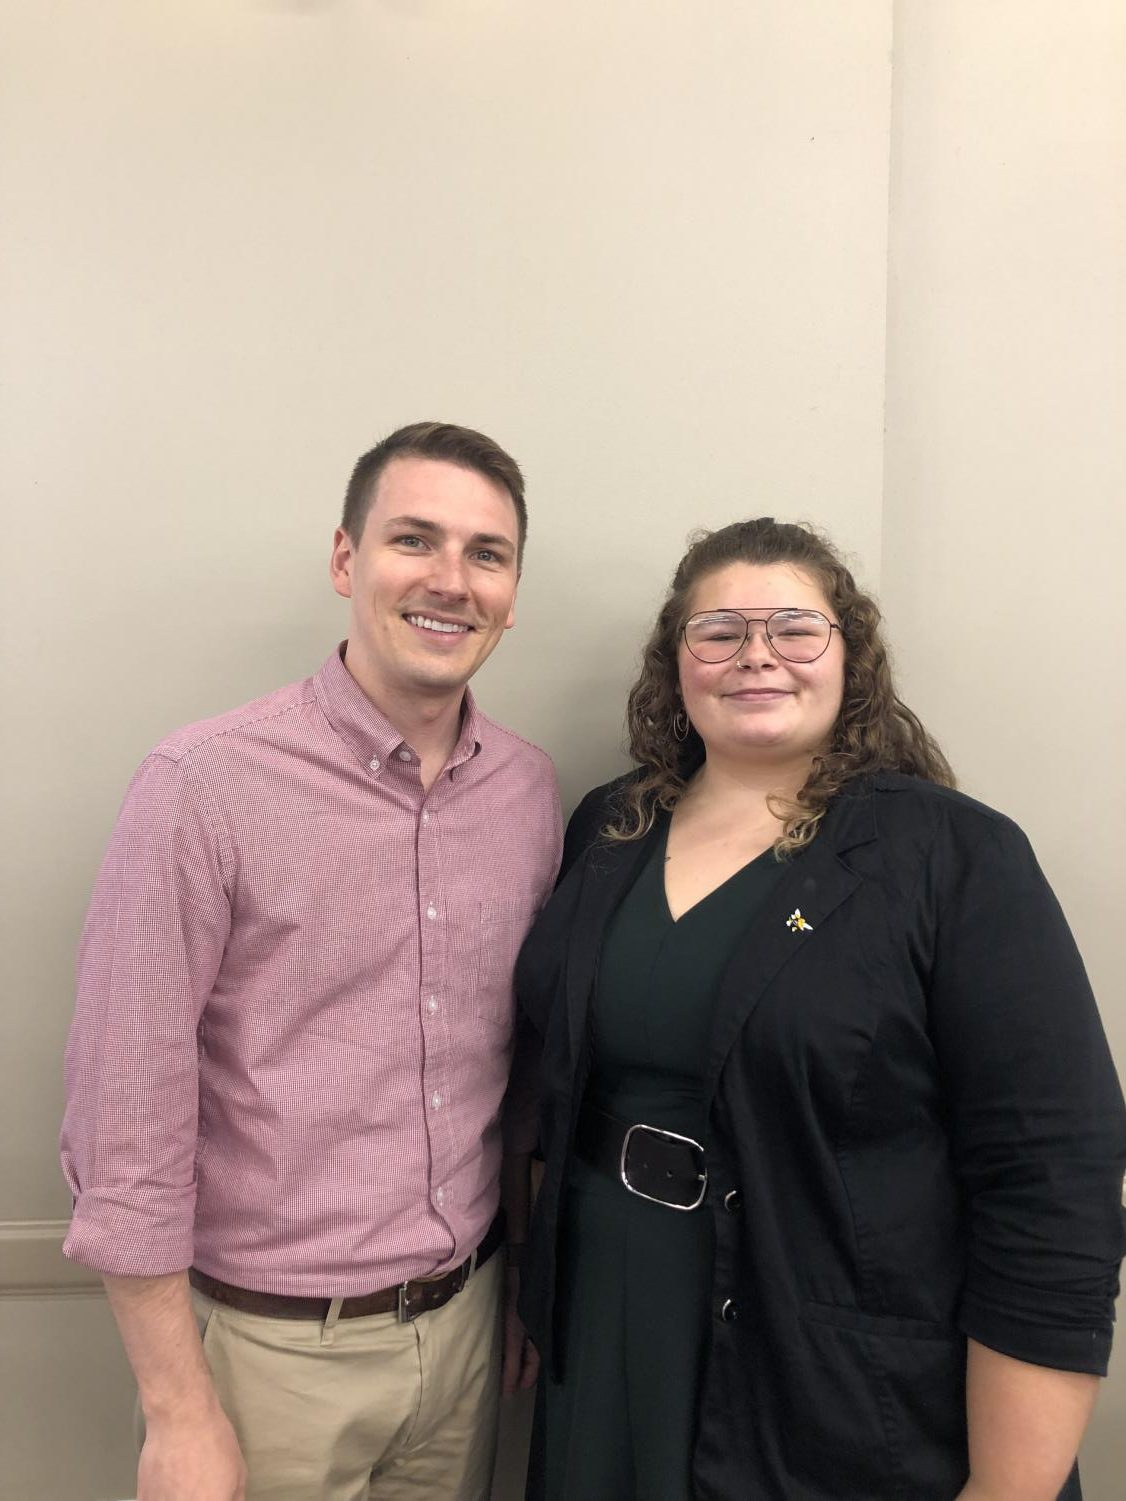 Pictured here is Dean of Students, Matthew Scott and Mariah Mauke, Legislative Chairperson of the 80th Model Congress.